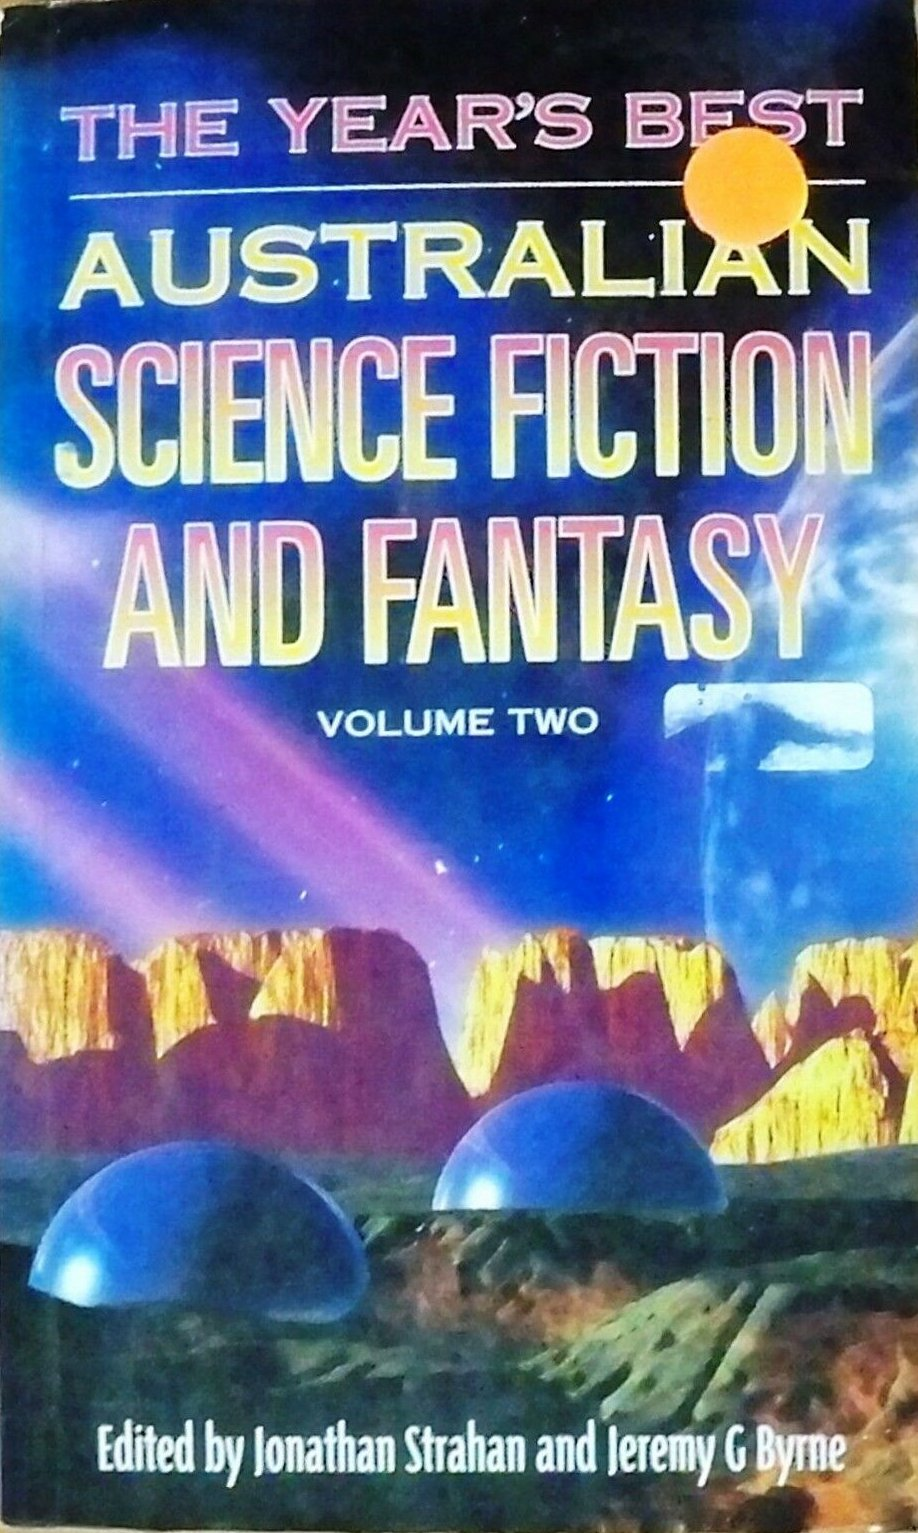 The Year's Best Australian Science Fiction And Fantasy, Volume Two